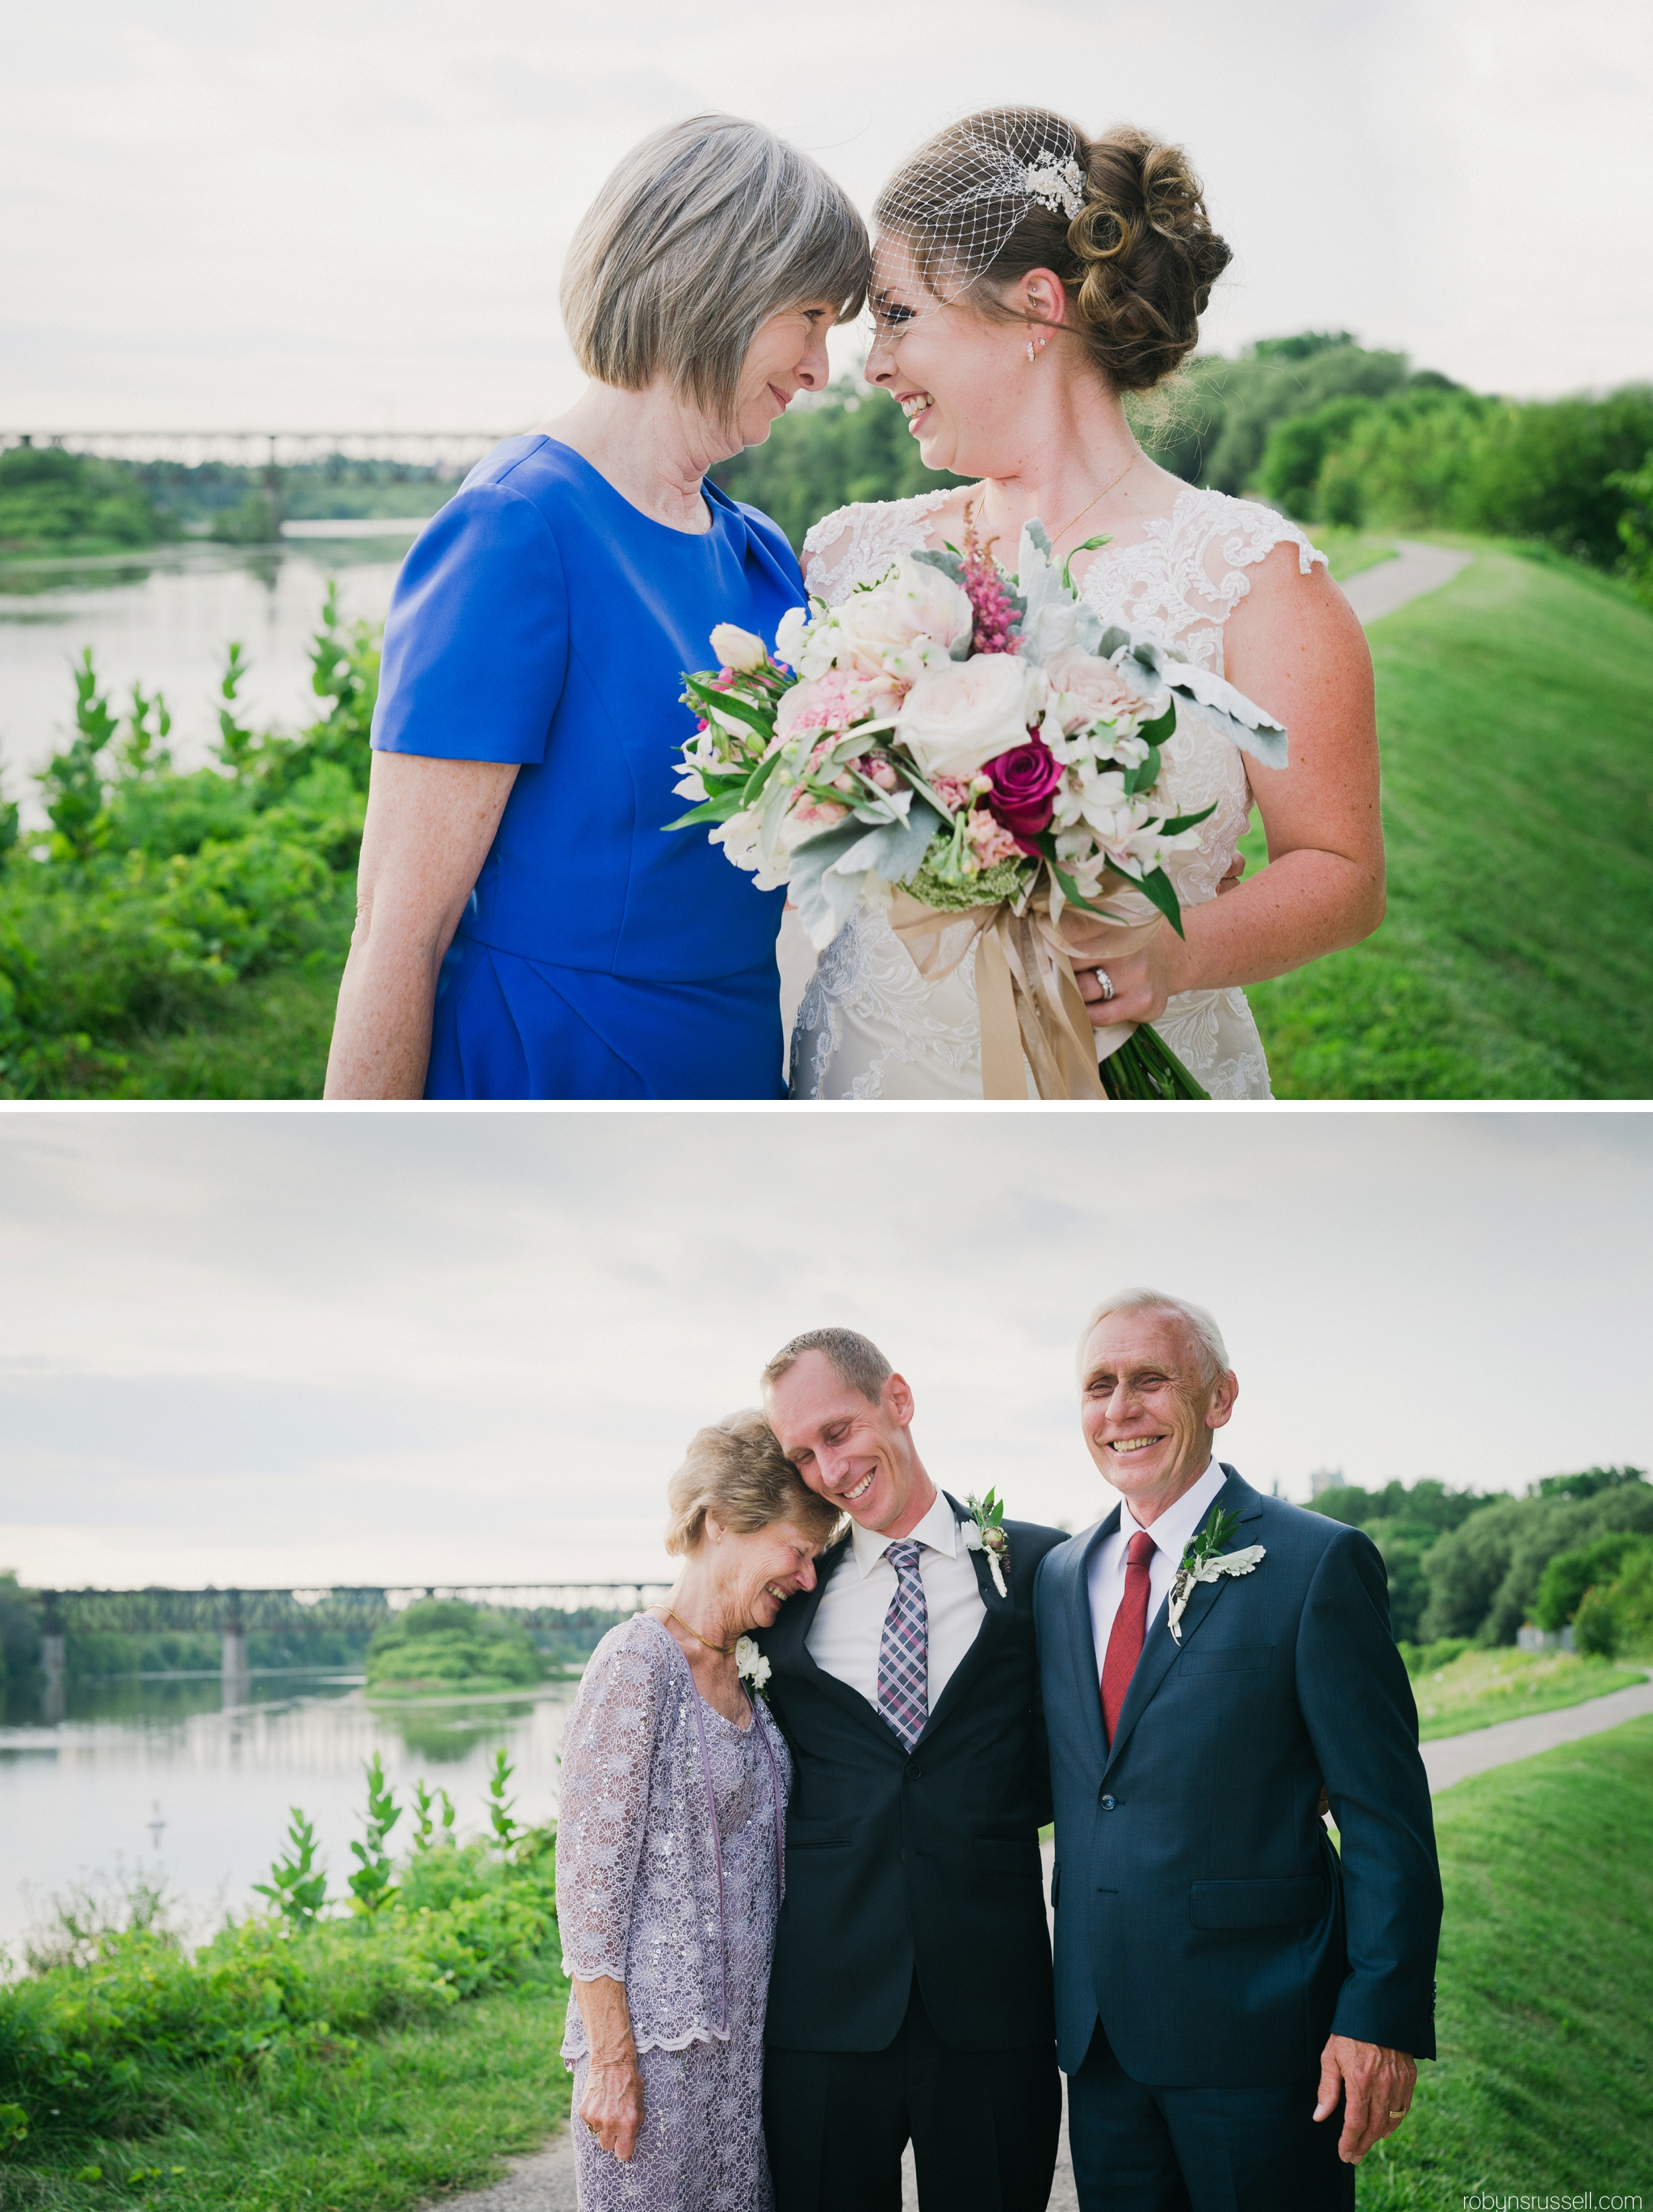 34-sweet-family-moments-for-bride-and-groom.jpg